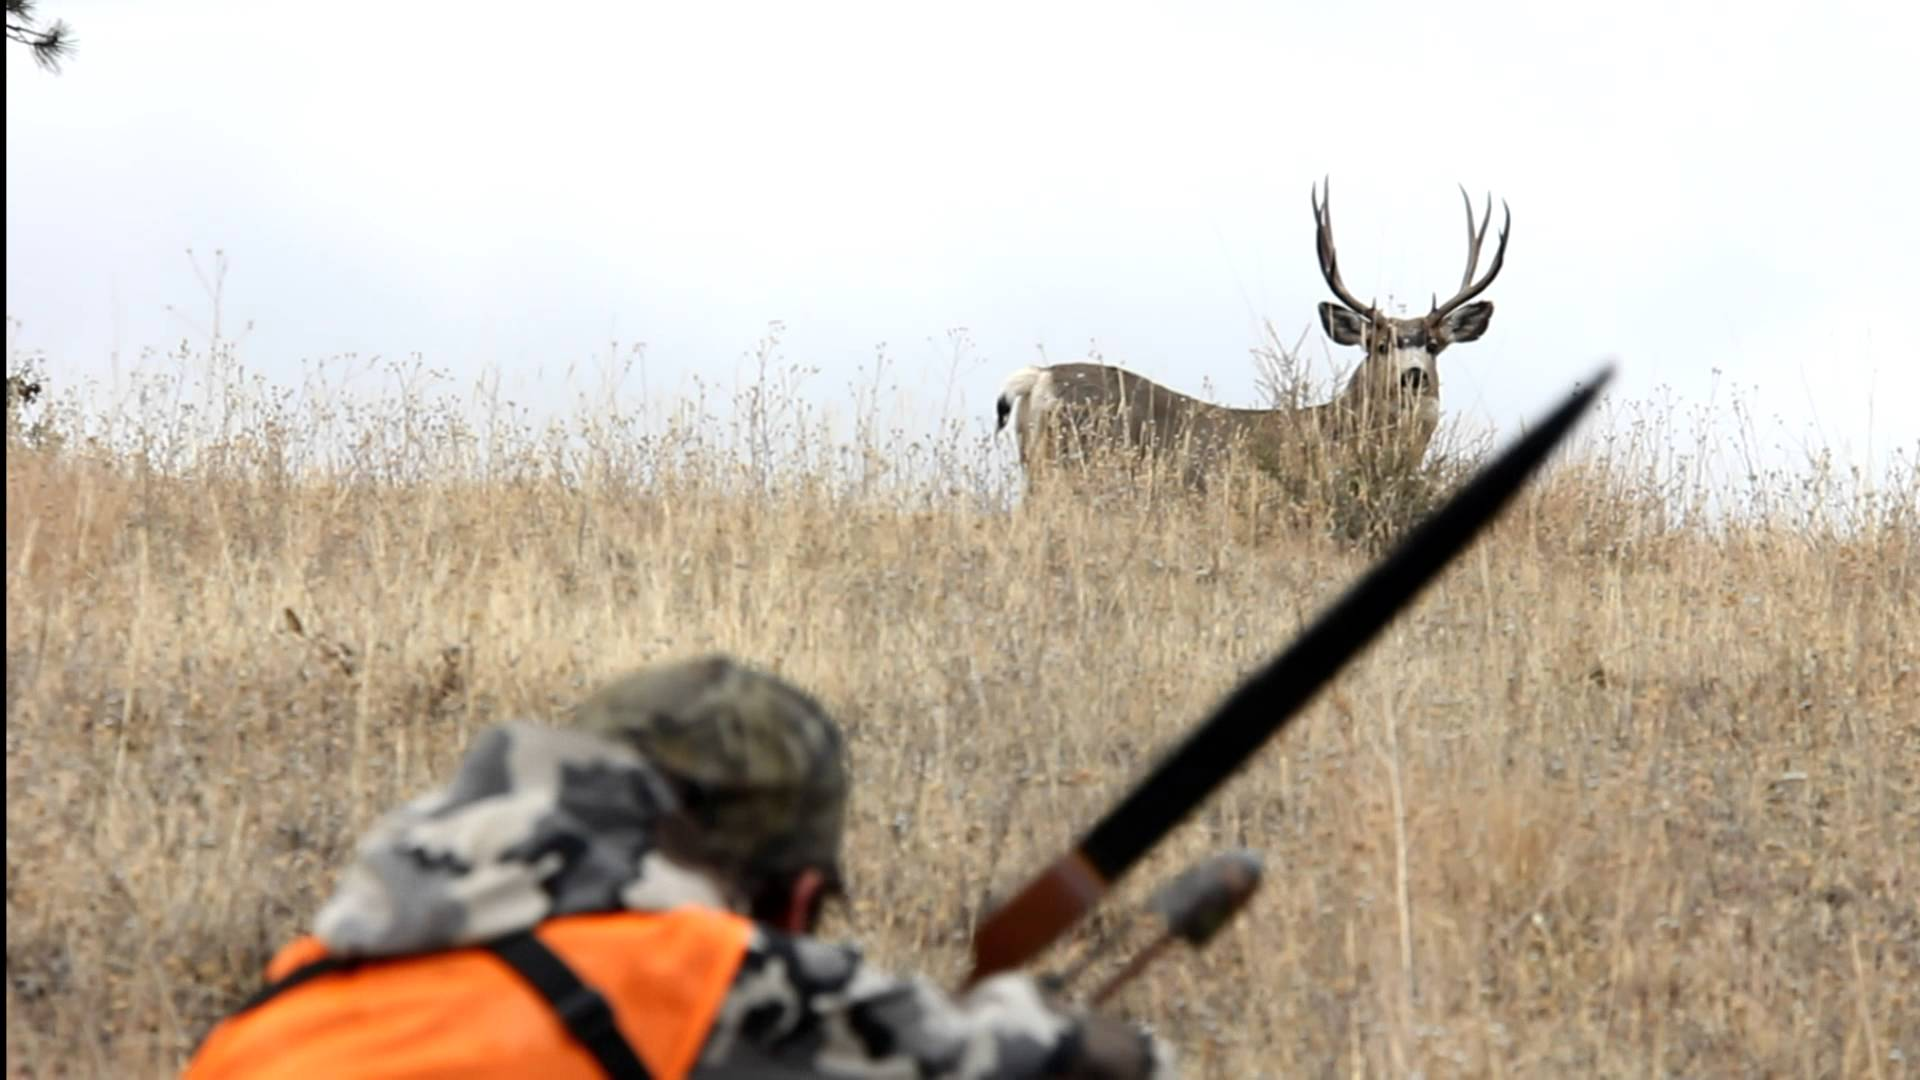 Tips On Hunting The Deer-Use The Bow